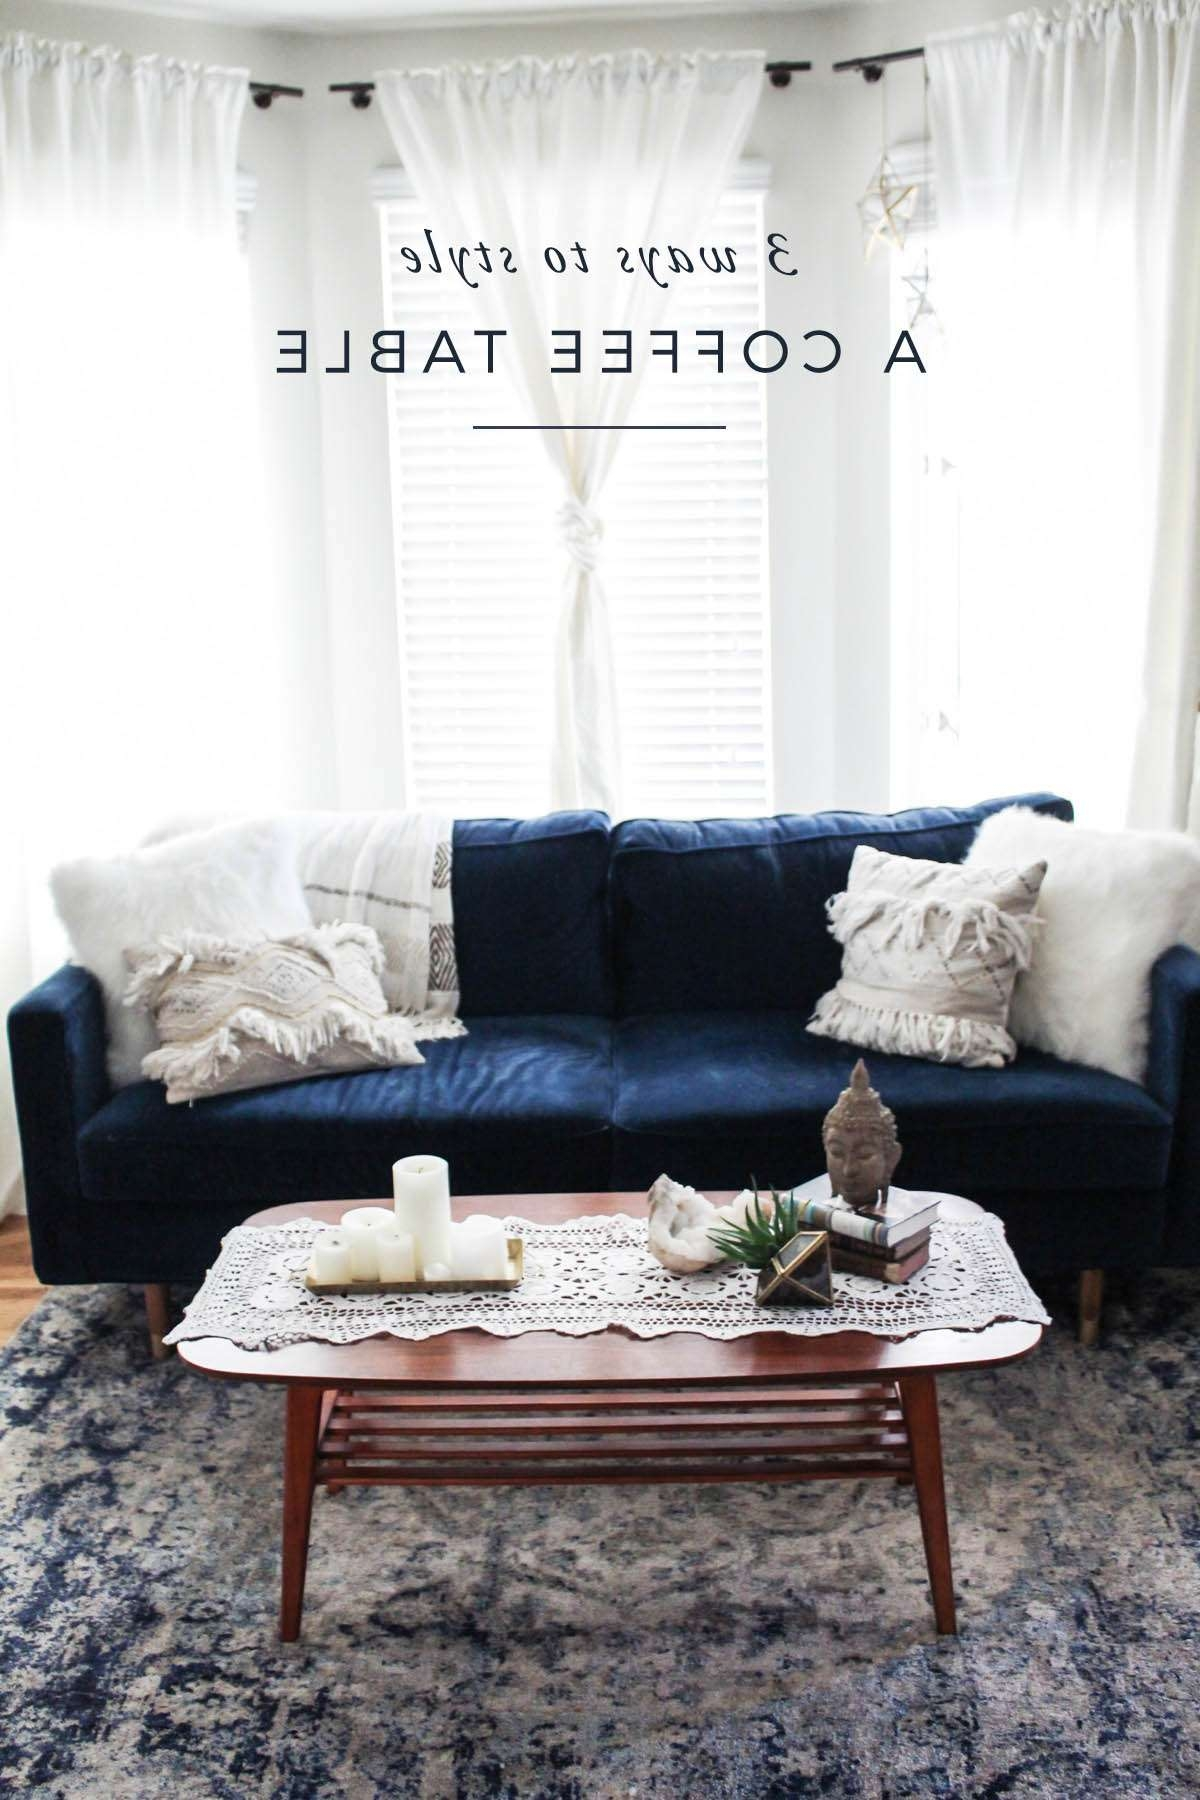 3 Ways To Style A Coffee Table – Aol Lifestyle Throughout Widely Used Boho Coffee Tables (Gallery 2 of 20)